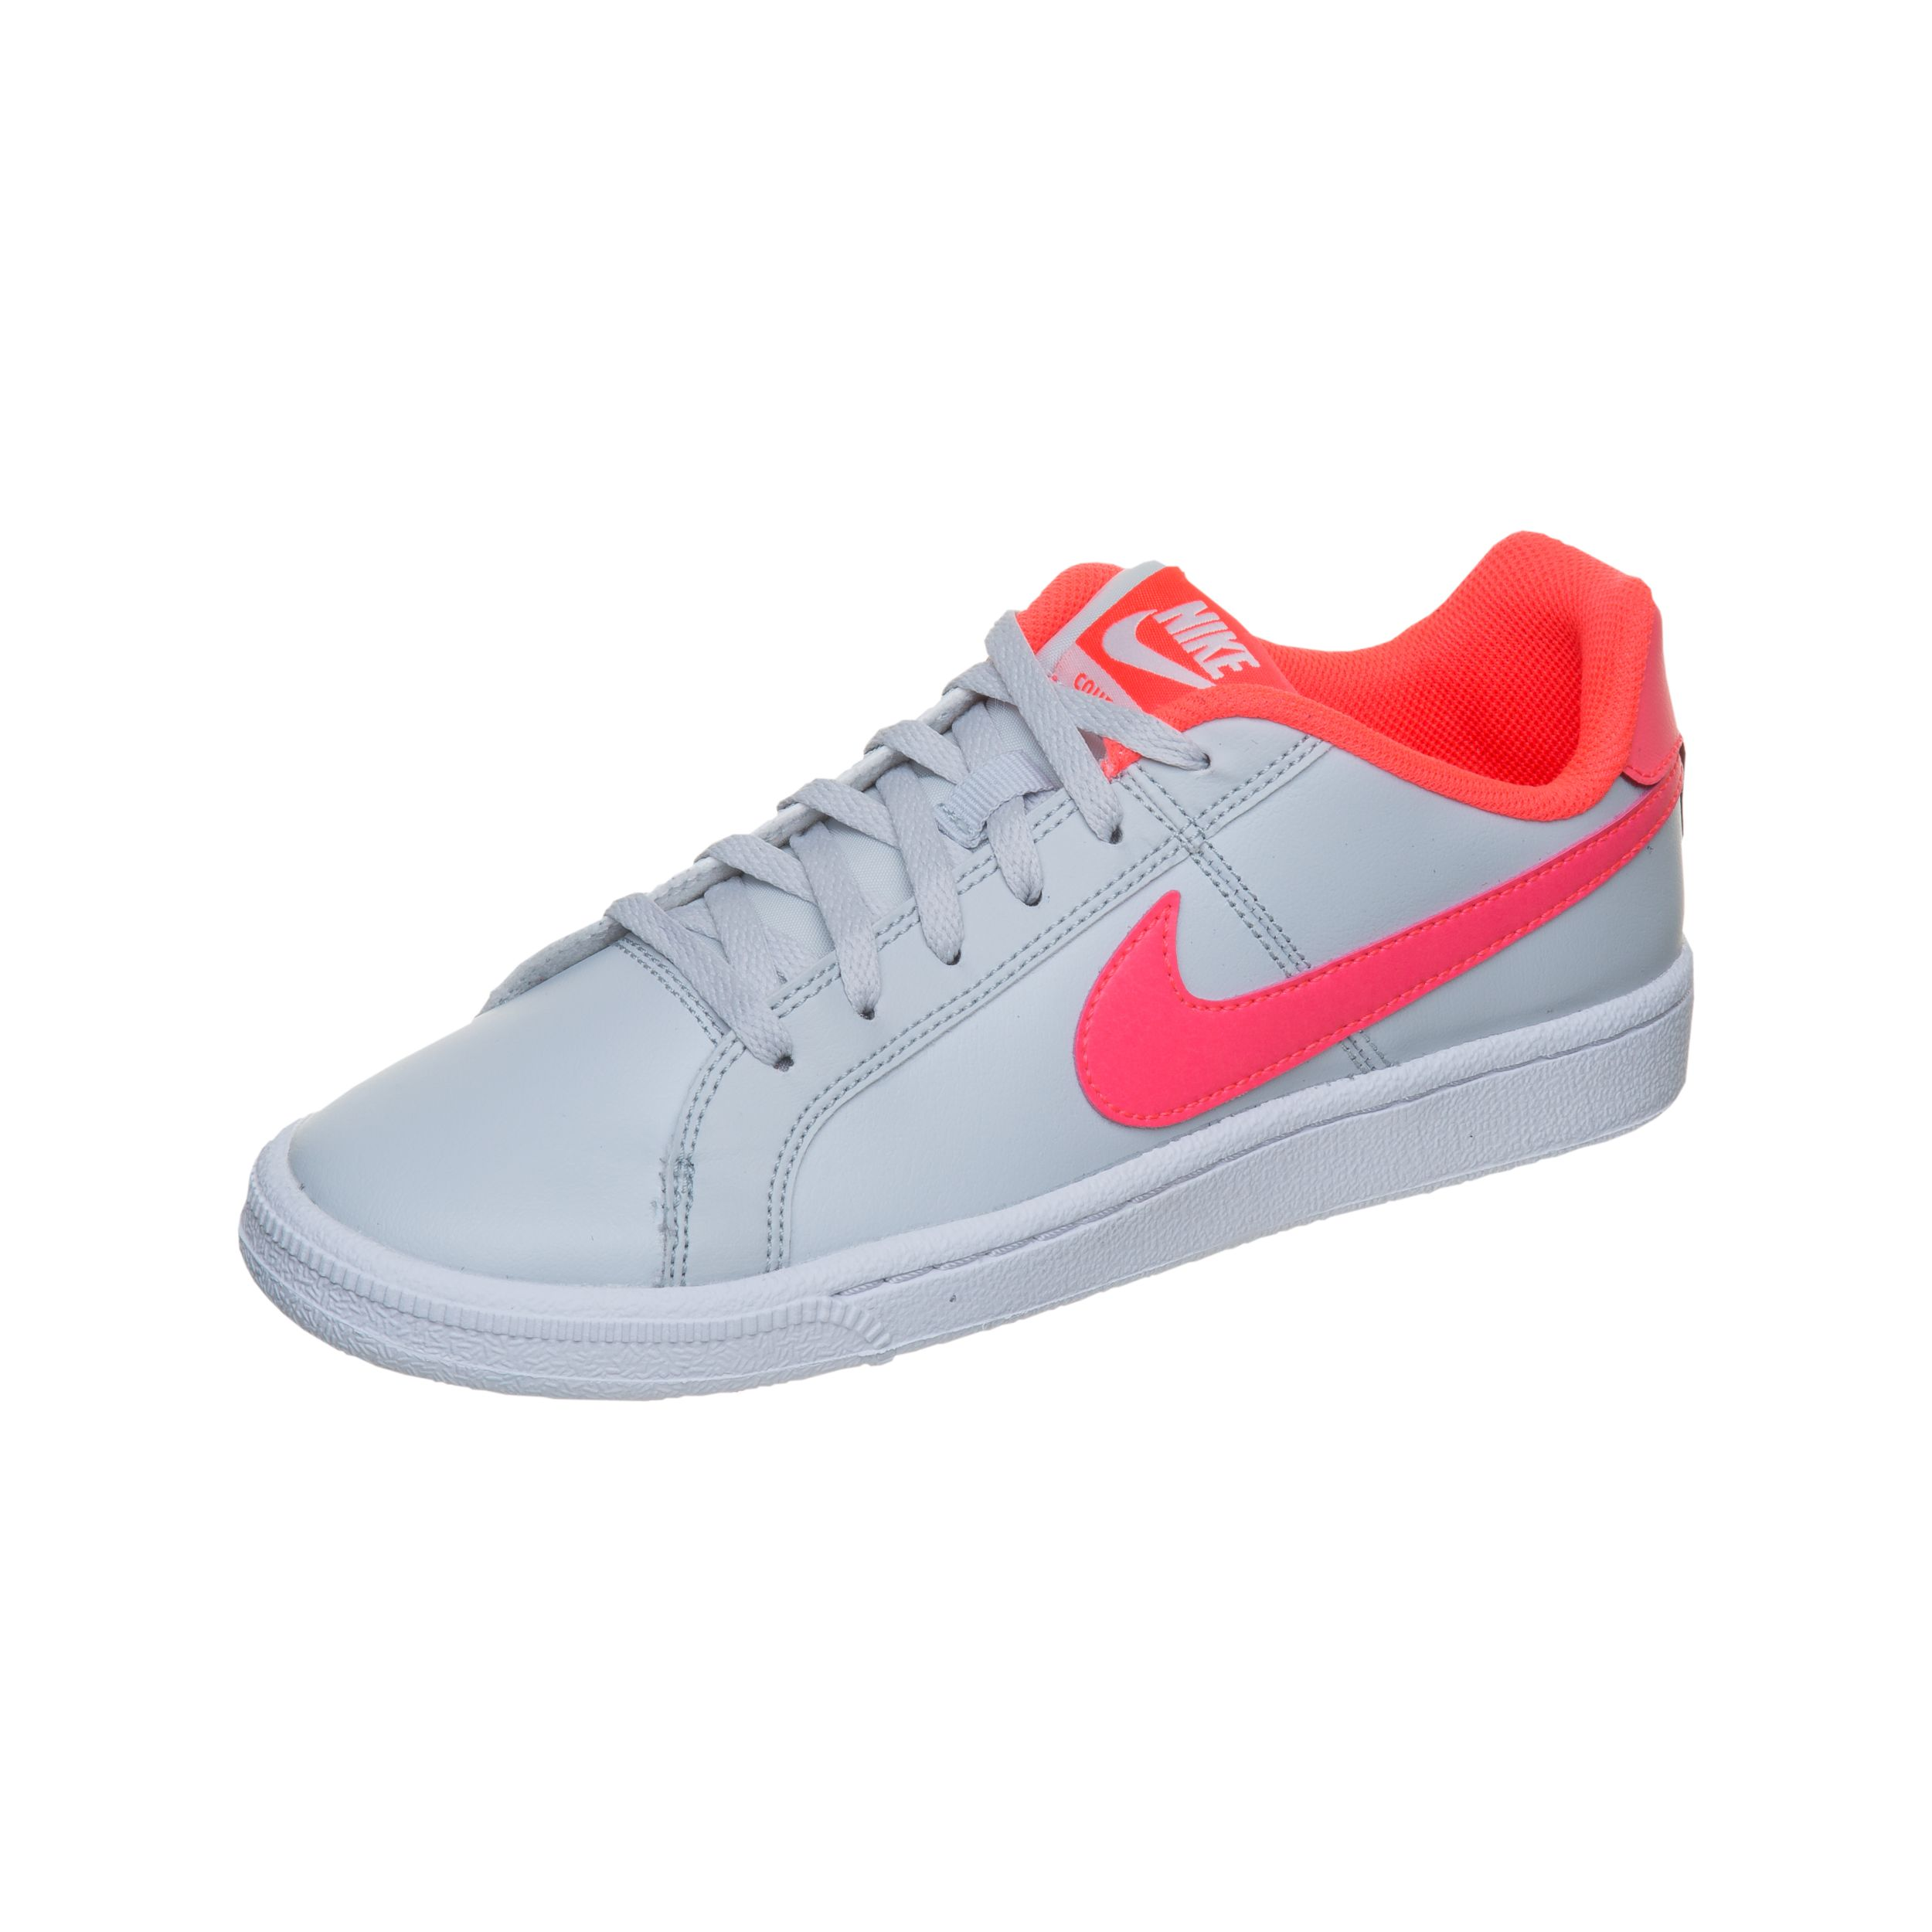 Nike Kinder Sneaker Court Royale (GS) 833654-005 38.5 L9KwxID10